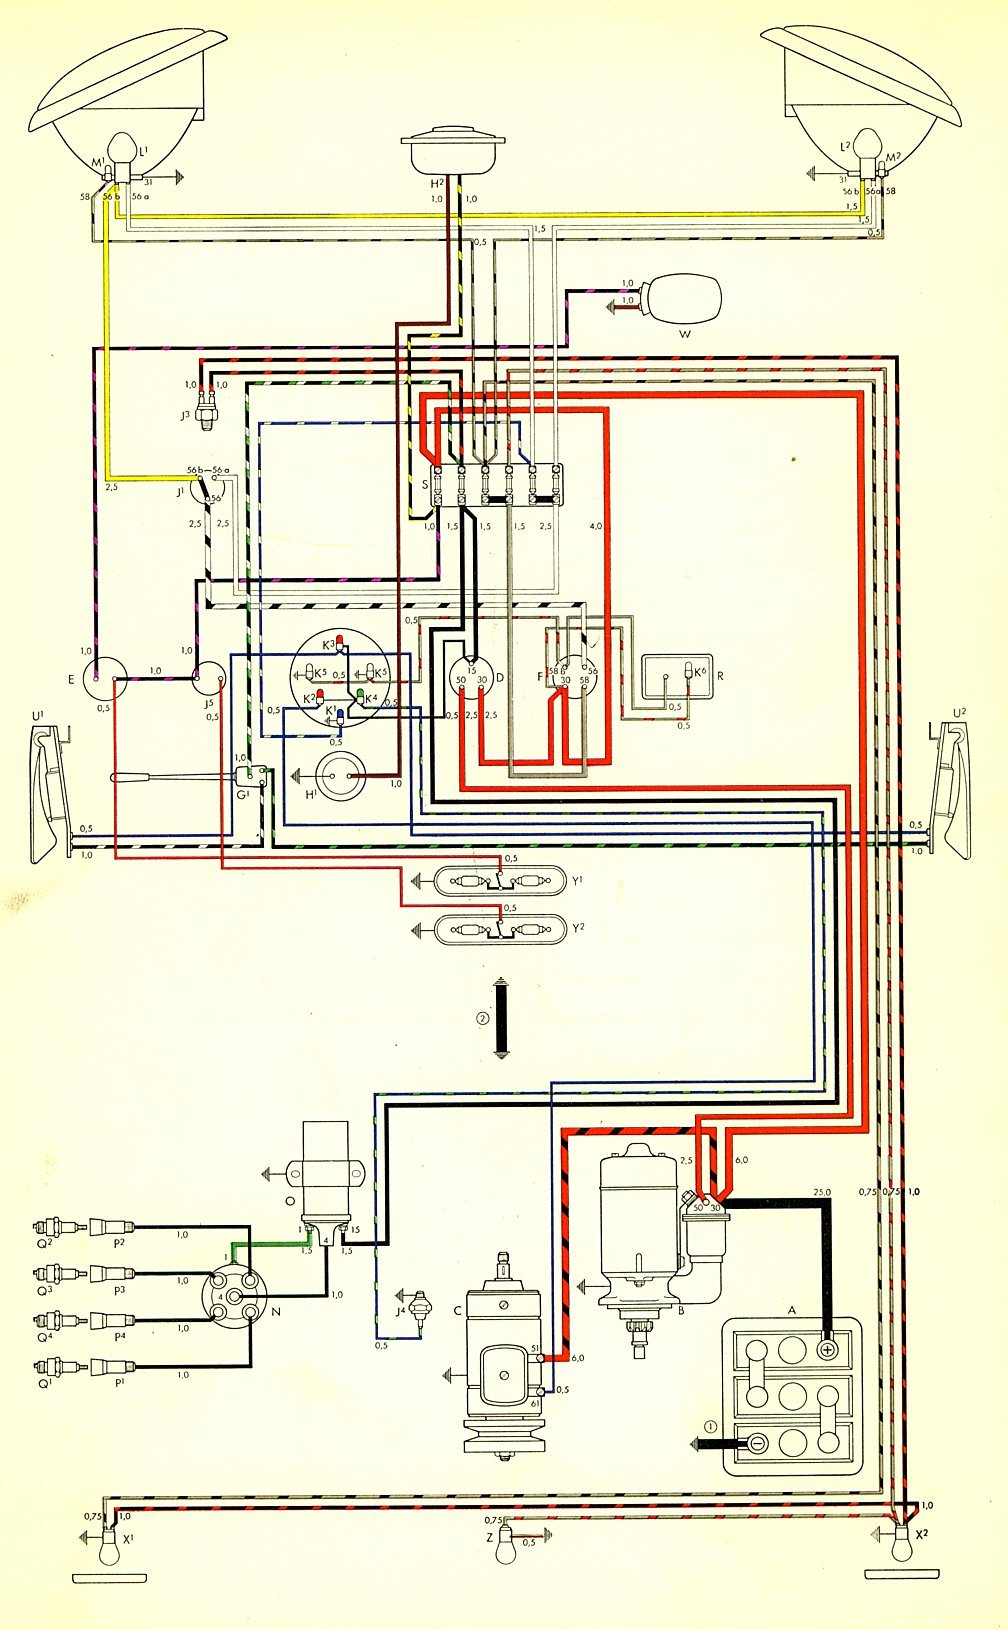 1963 vw bug wiring best part of wiring diagram